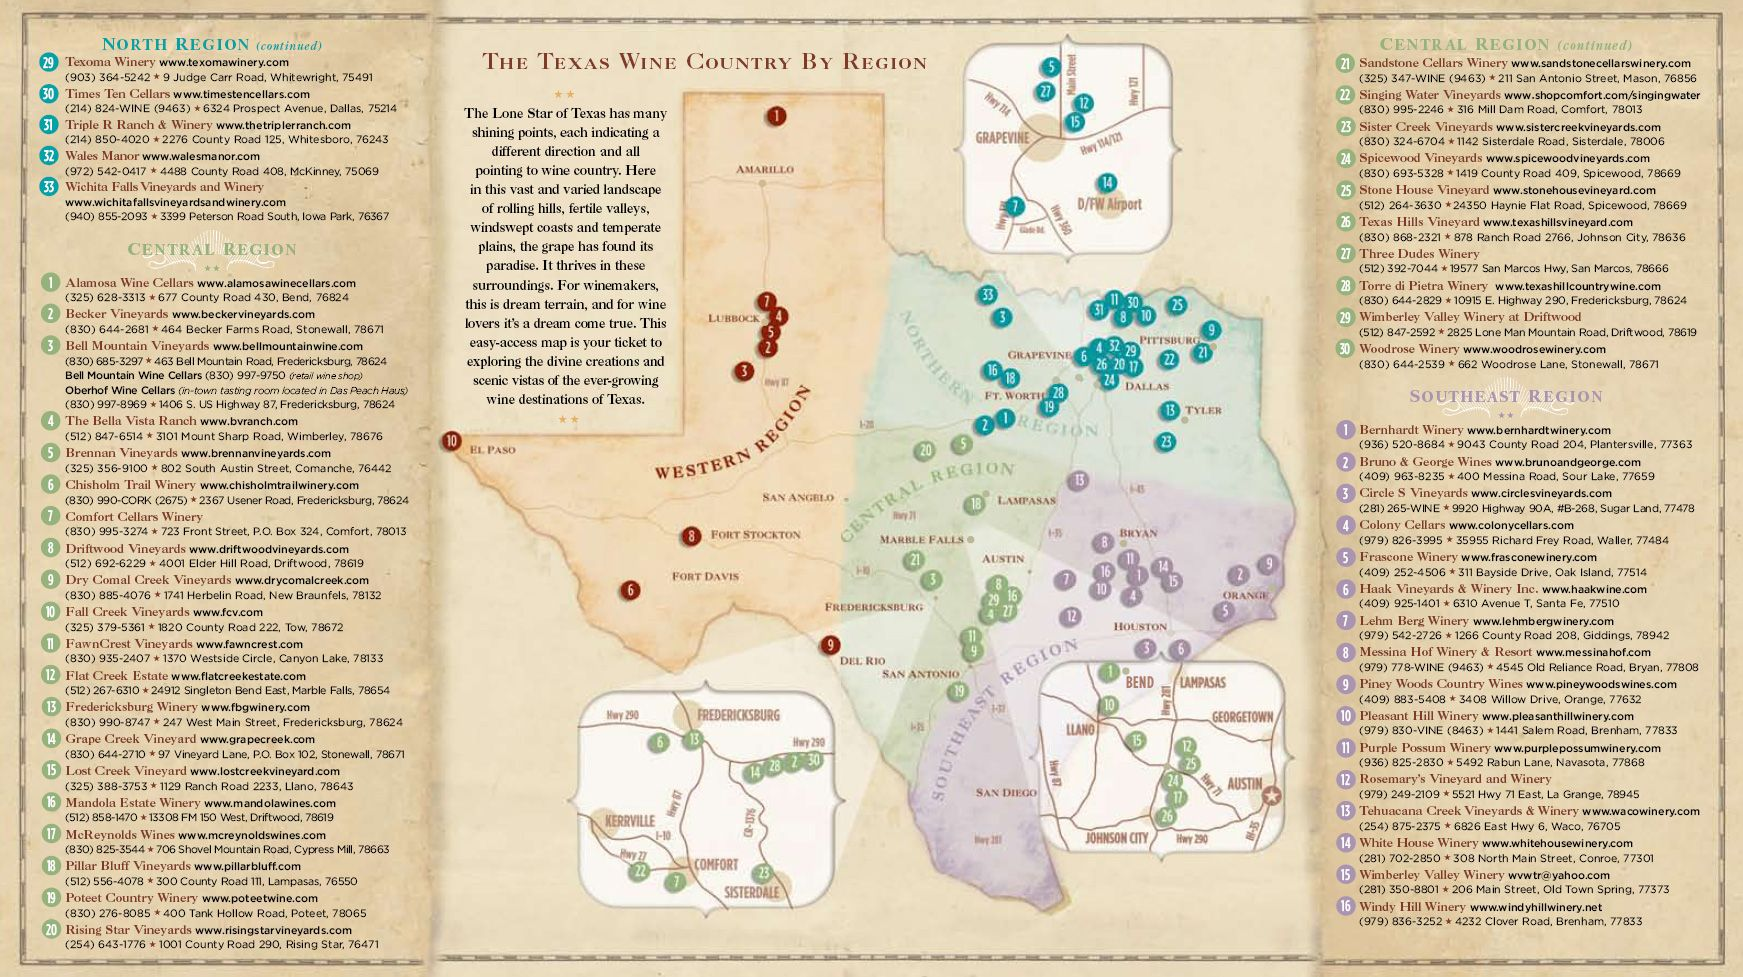 Driving Maps Texas Wine And Trail Magazine